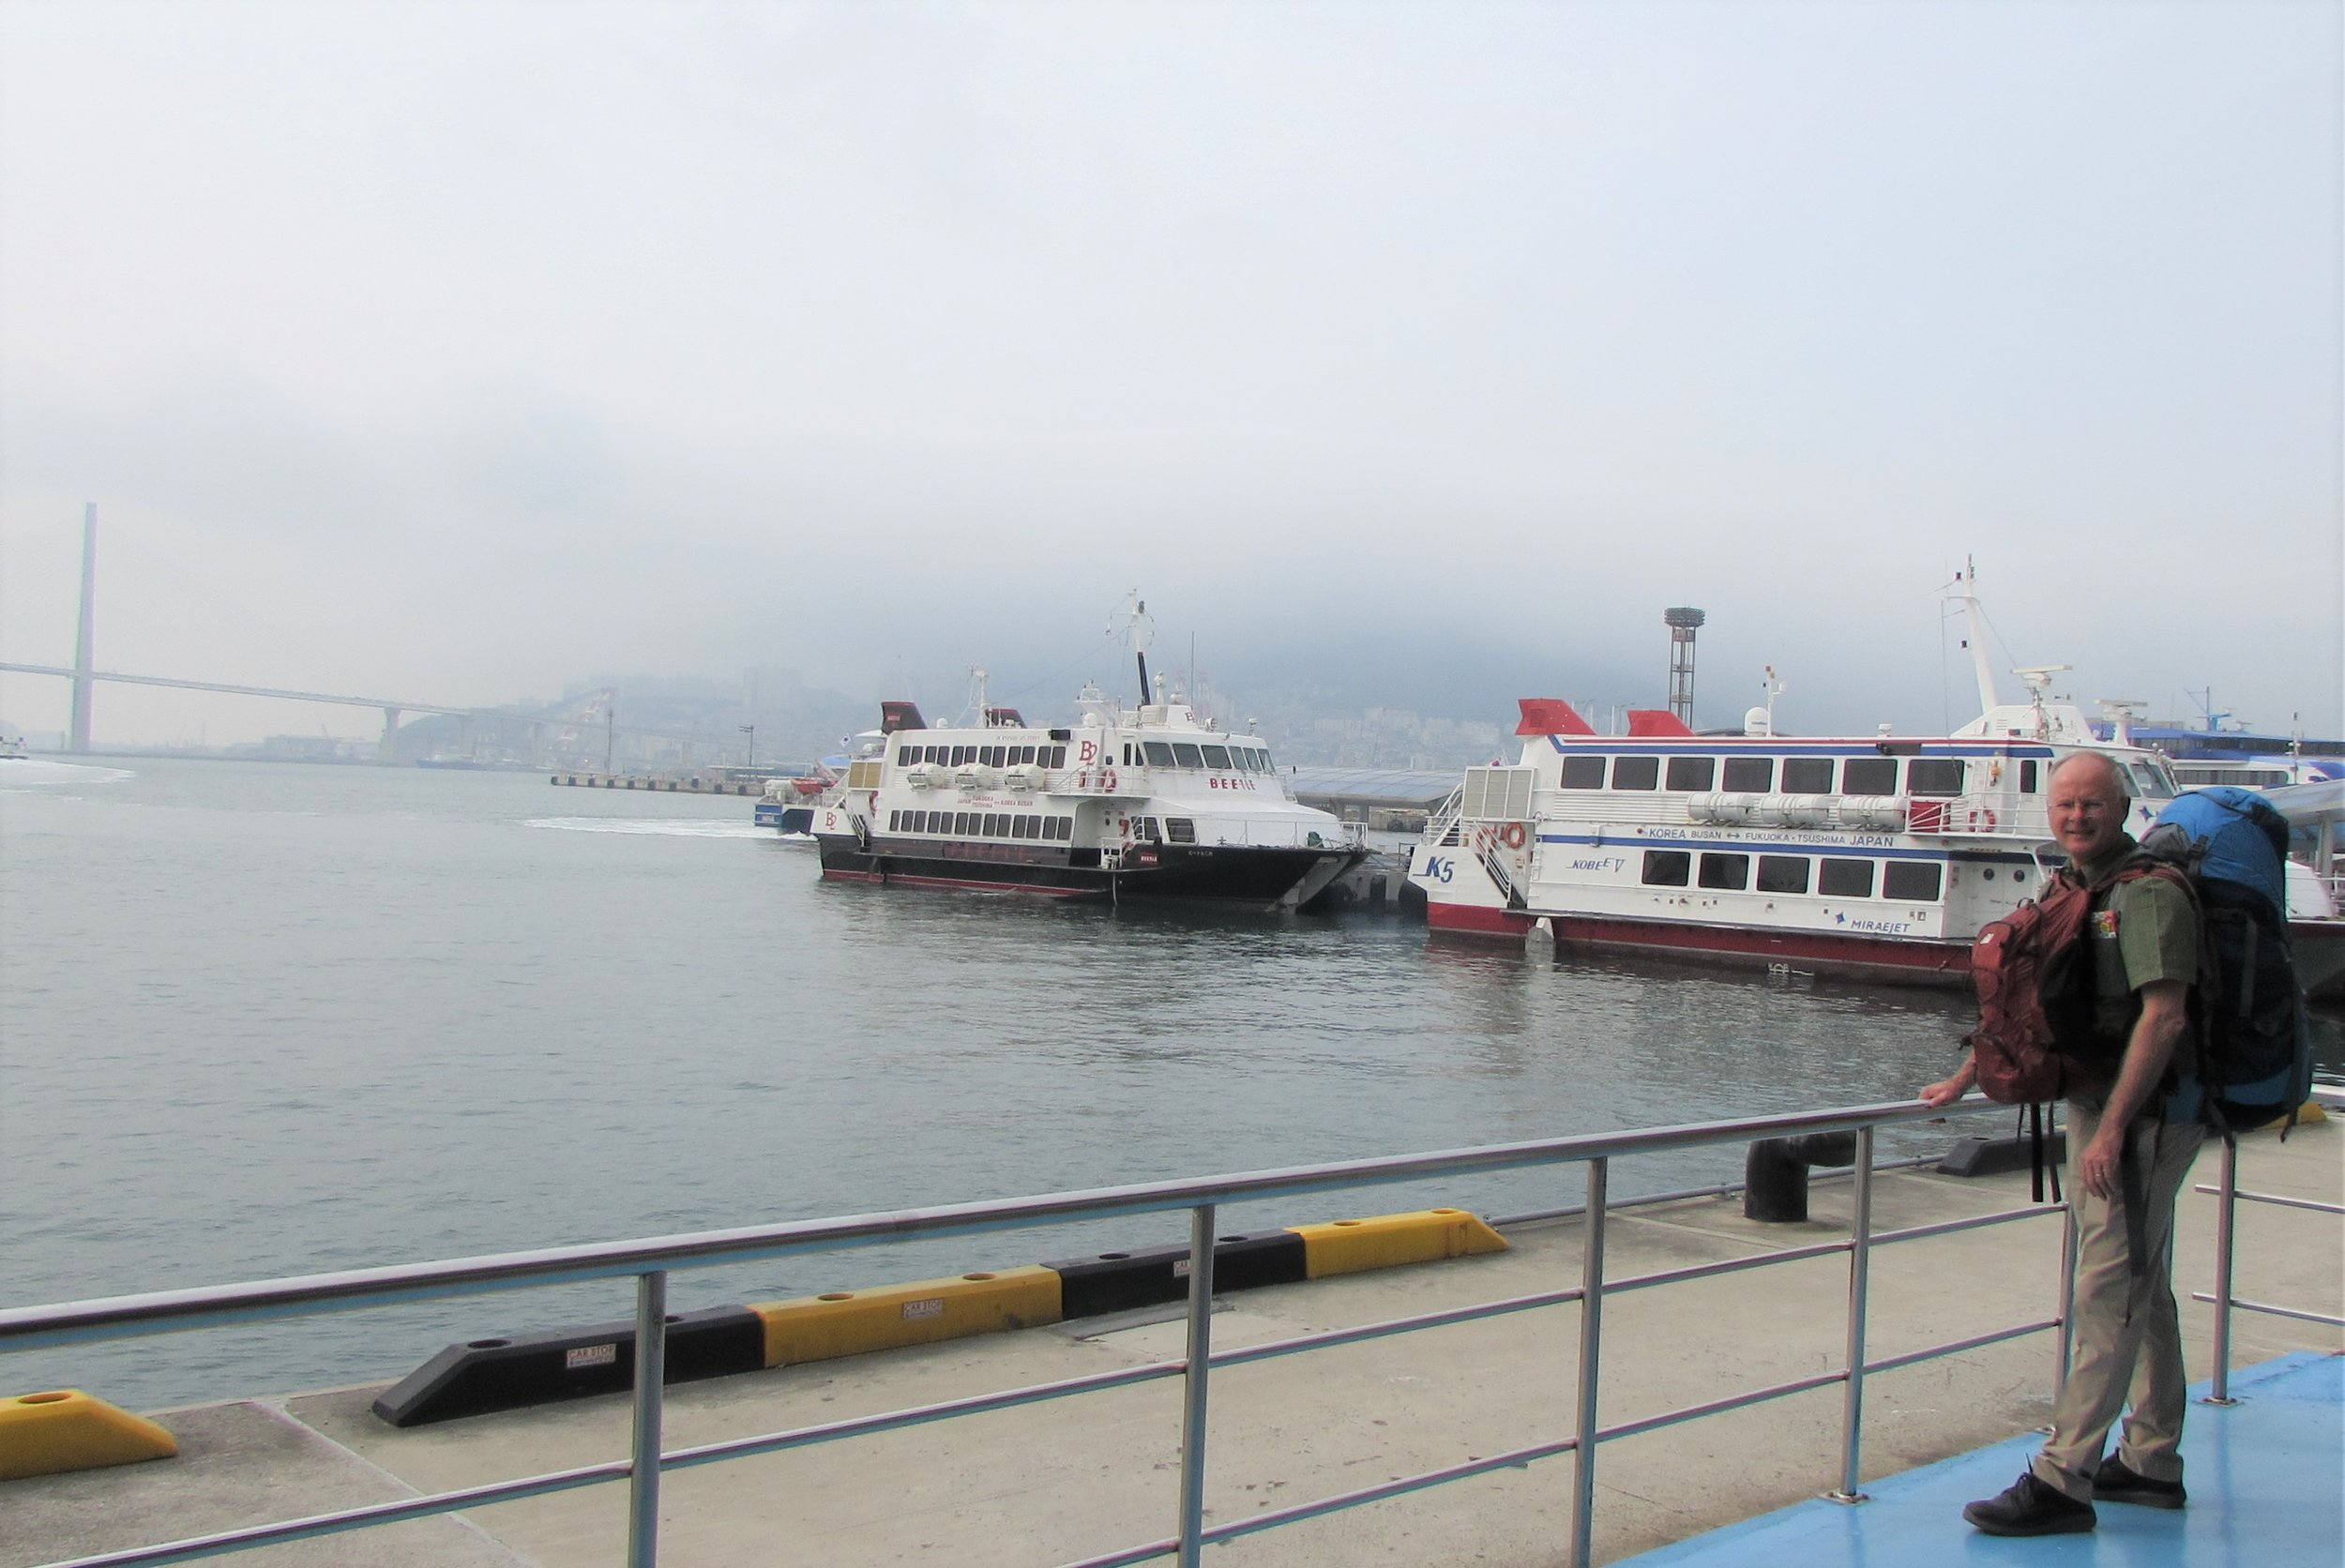 Boarding the hydrofoil ferry in Busan